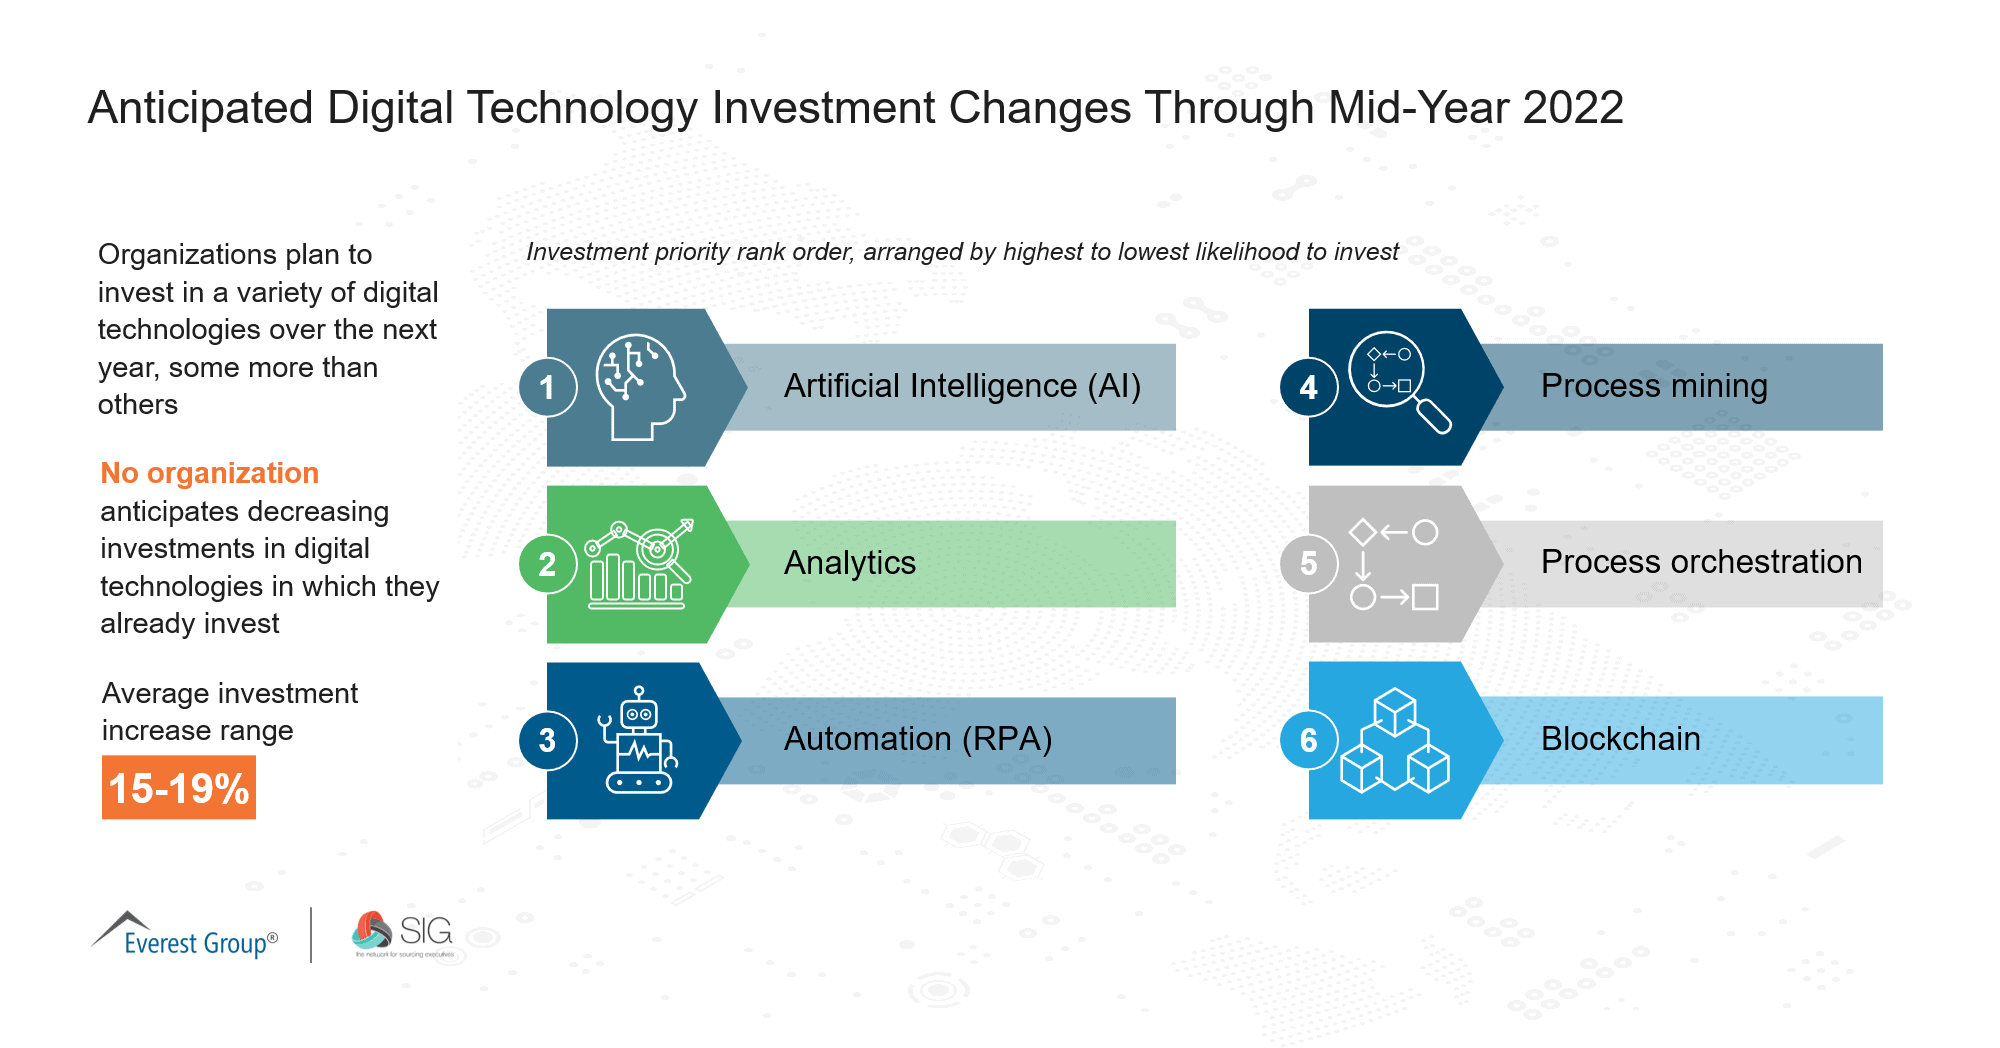 June 2021 Quick Poll | Anticipated Digital Technology Investment Changes Through Mid-Year 2022